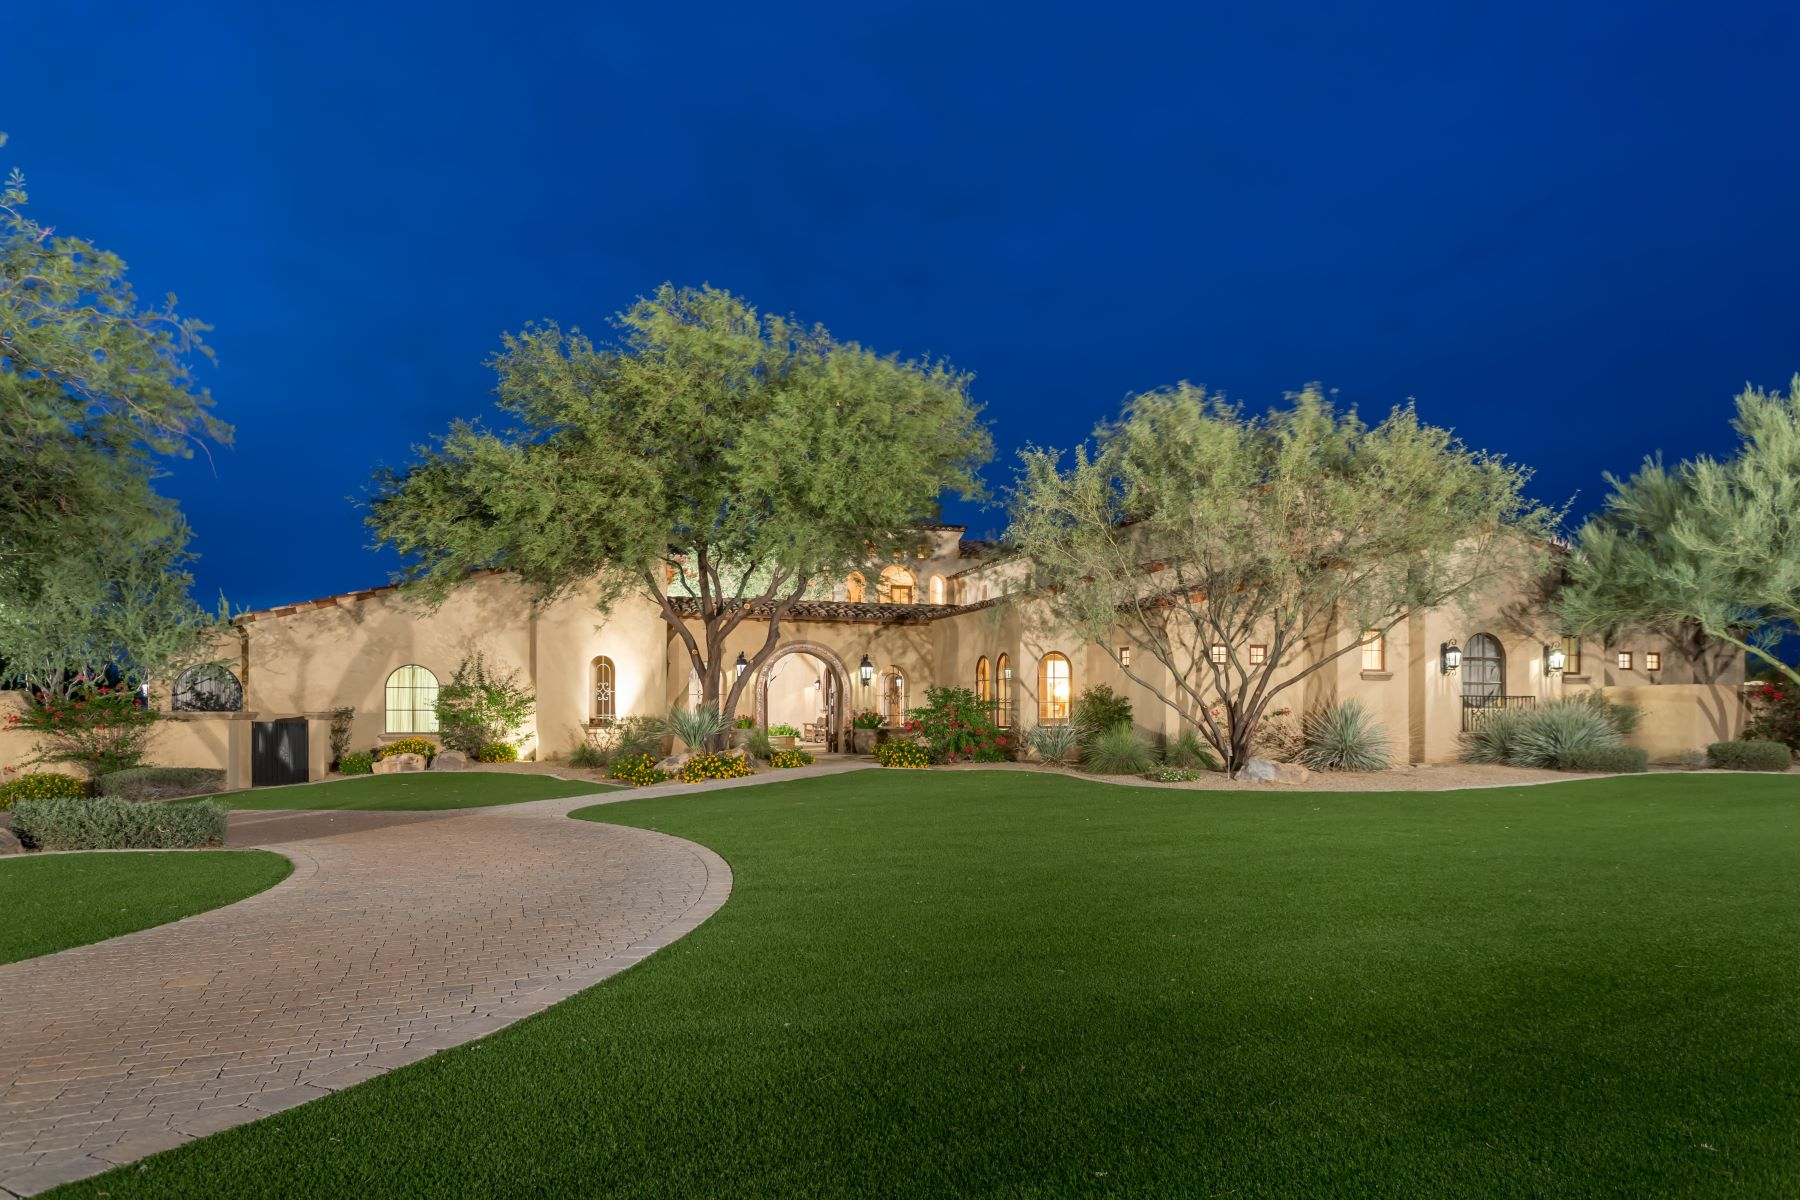 Einfamilienhaus für Verkauf beim Exclusive Estate Living Surrounded by sprawling mountains 24546 N 91st St Scottsdale, Arizona, 85255 Vereinigte Staaten